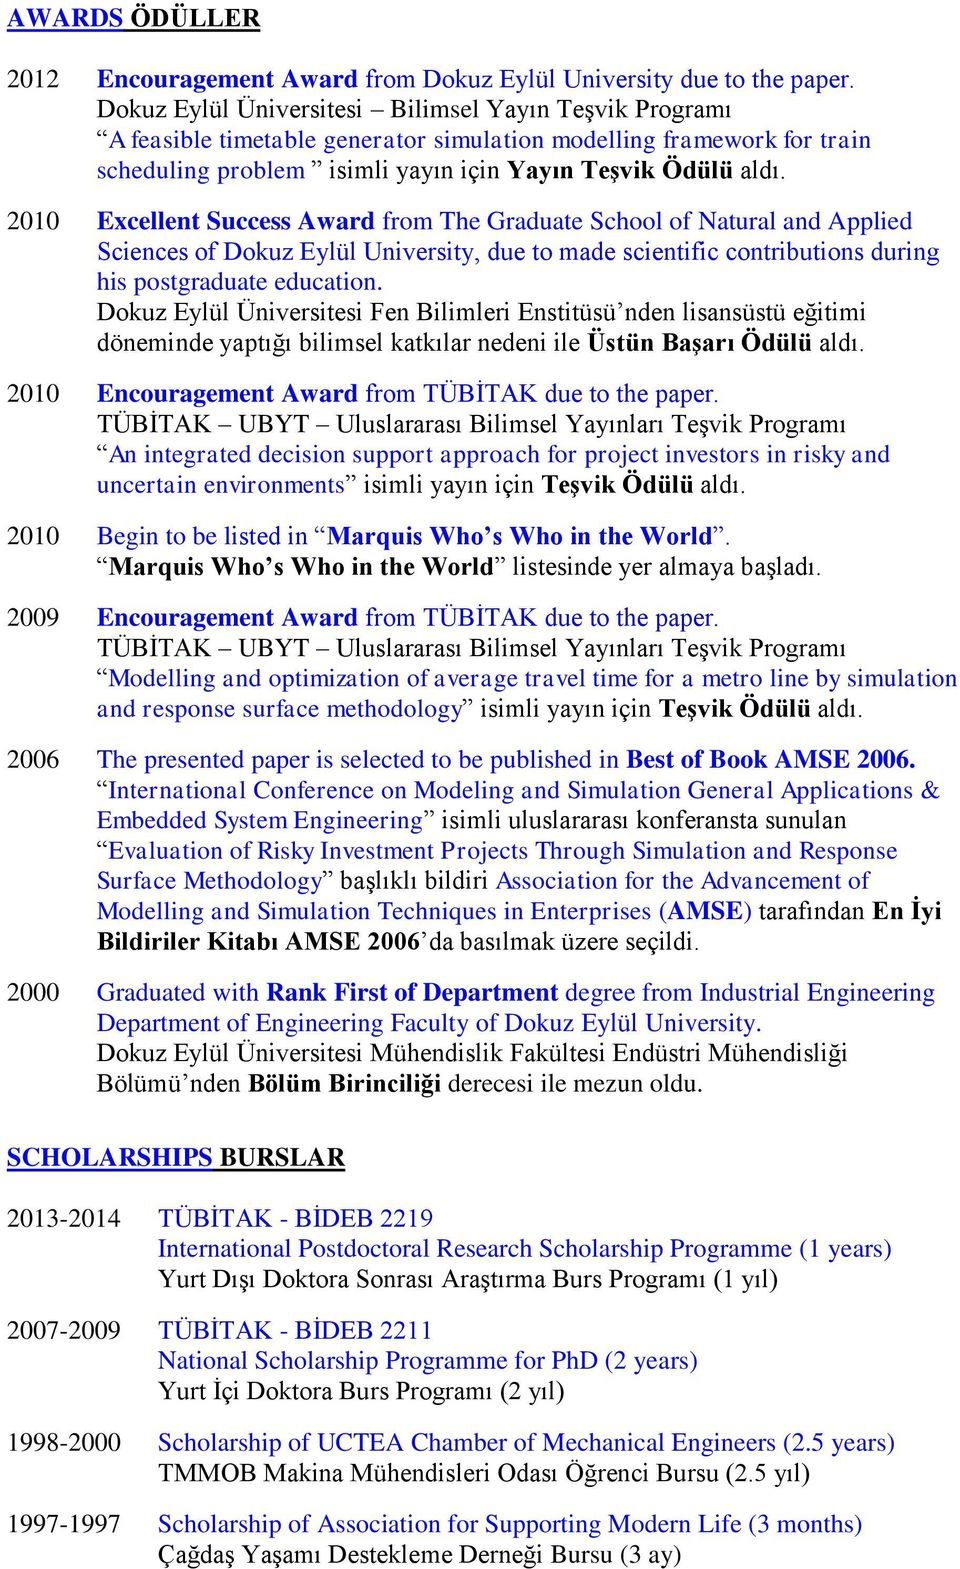 2010 Excellent Success Award from The Graduate School of Natural and Applied Sciences of Dokuz Eylül University, due to made scientific contributions during his postgraduate education.